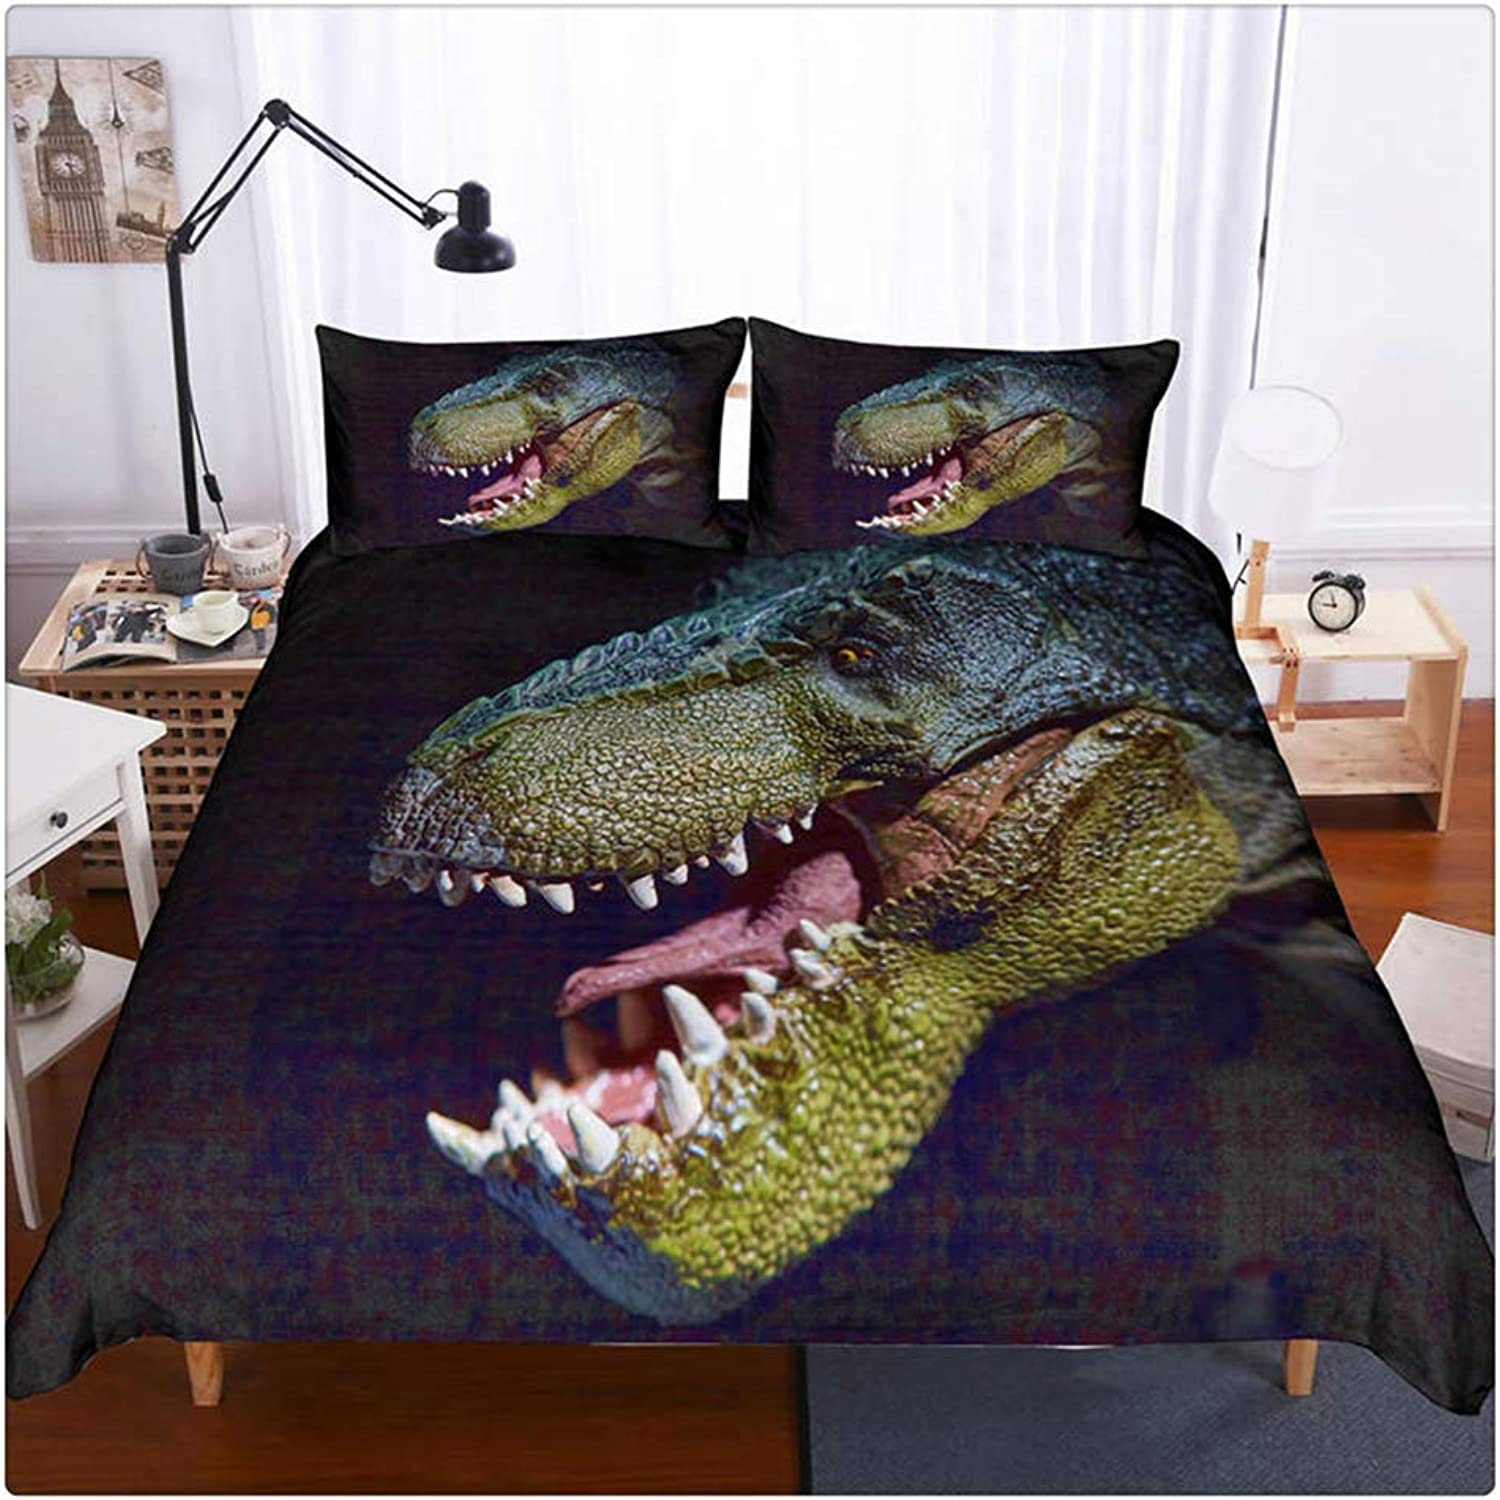 3D Dinosaur World Bedding Sets 2 Pieces Jurassic Duvet Quilt Cover Set for Kids Boys Teens, Twin Size